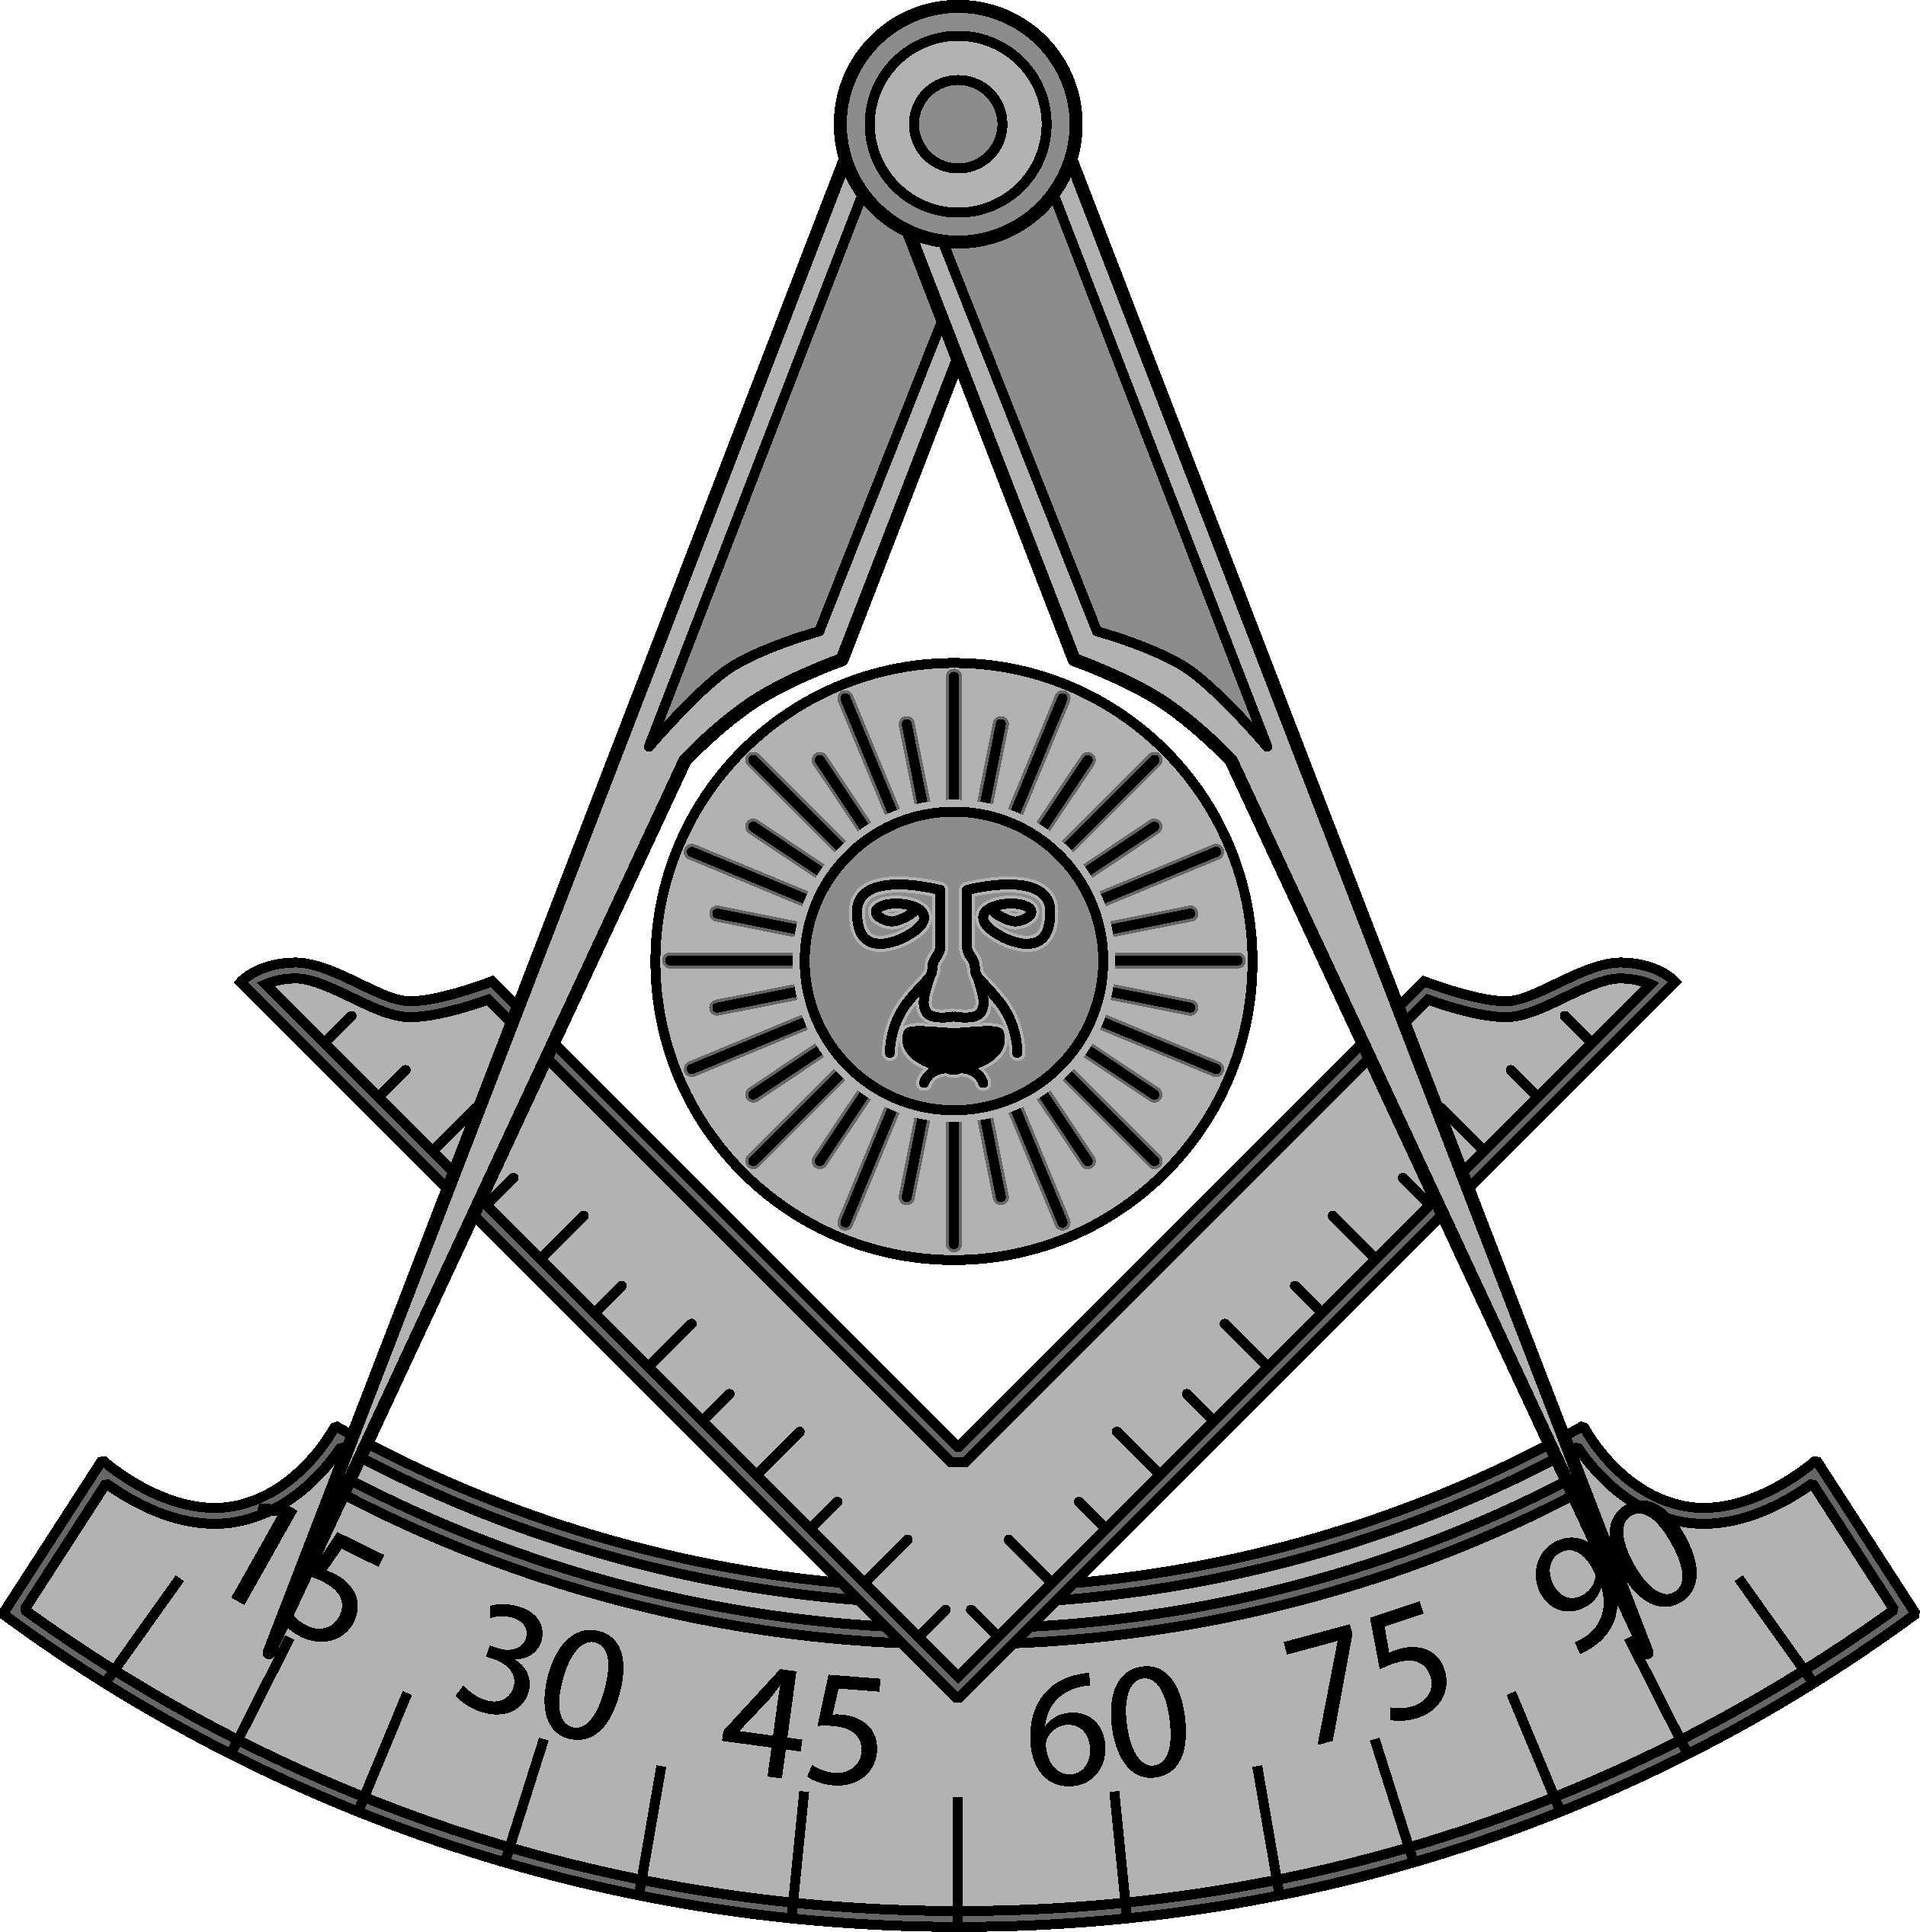 Pastmaster png . Column clipart masonic